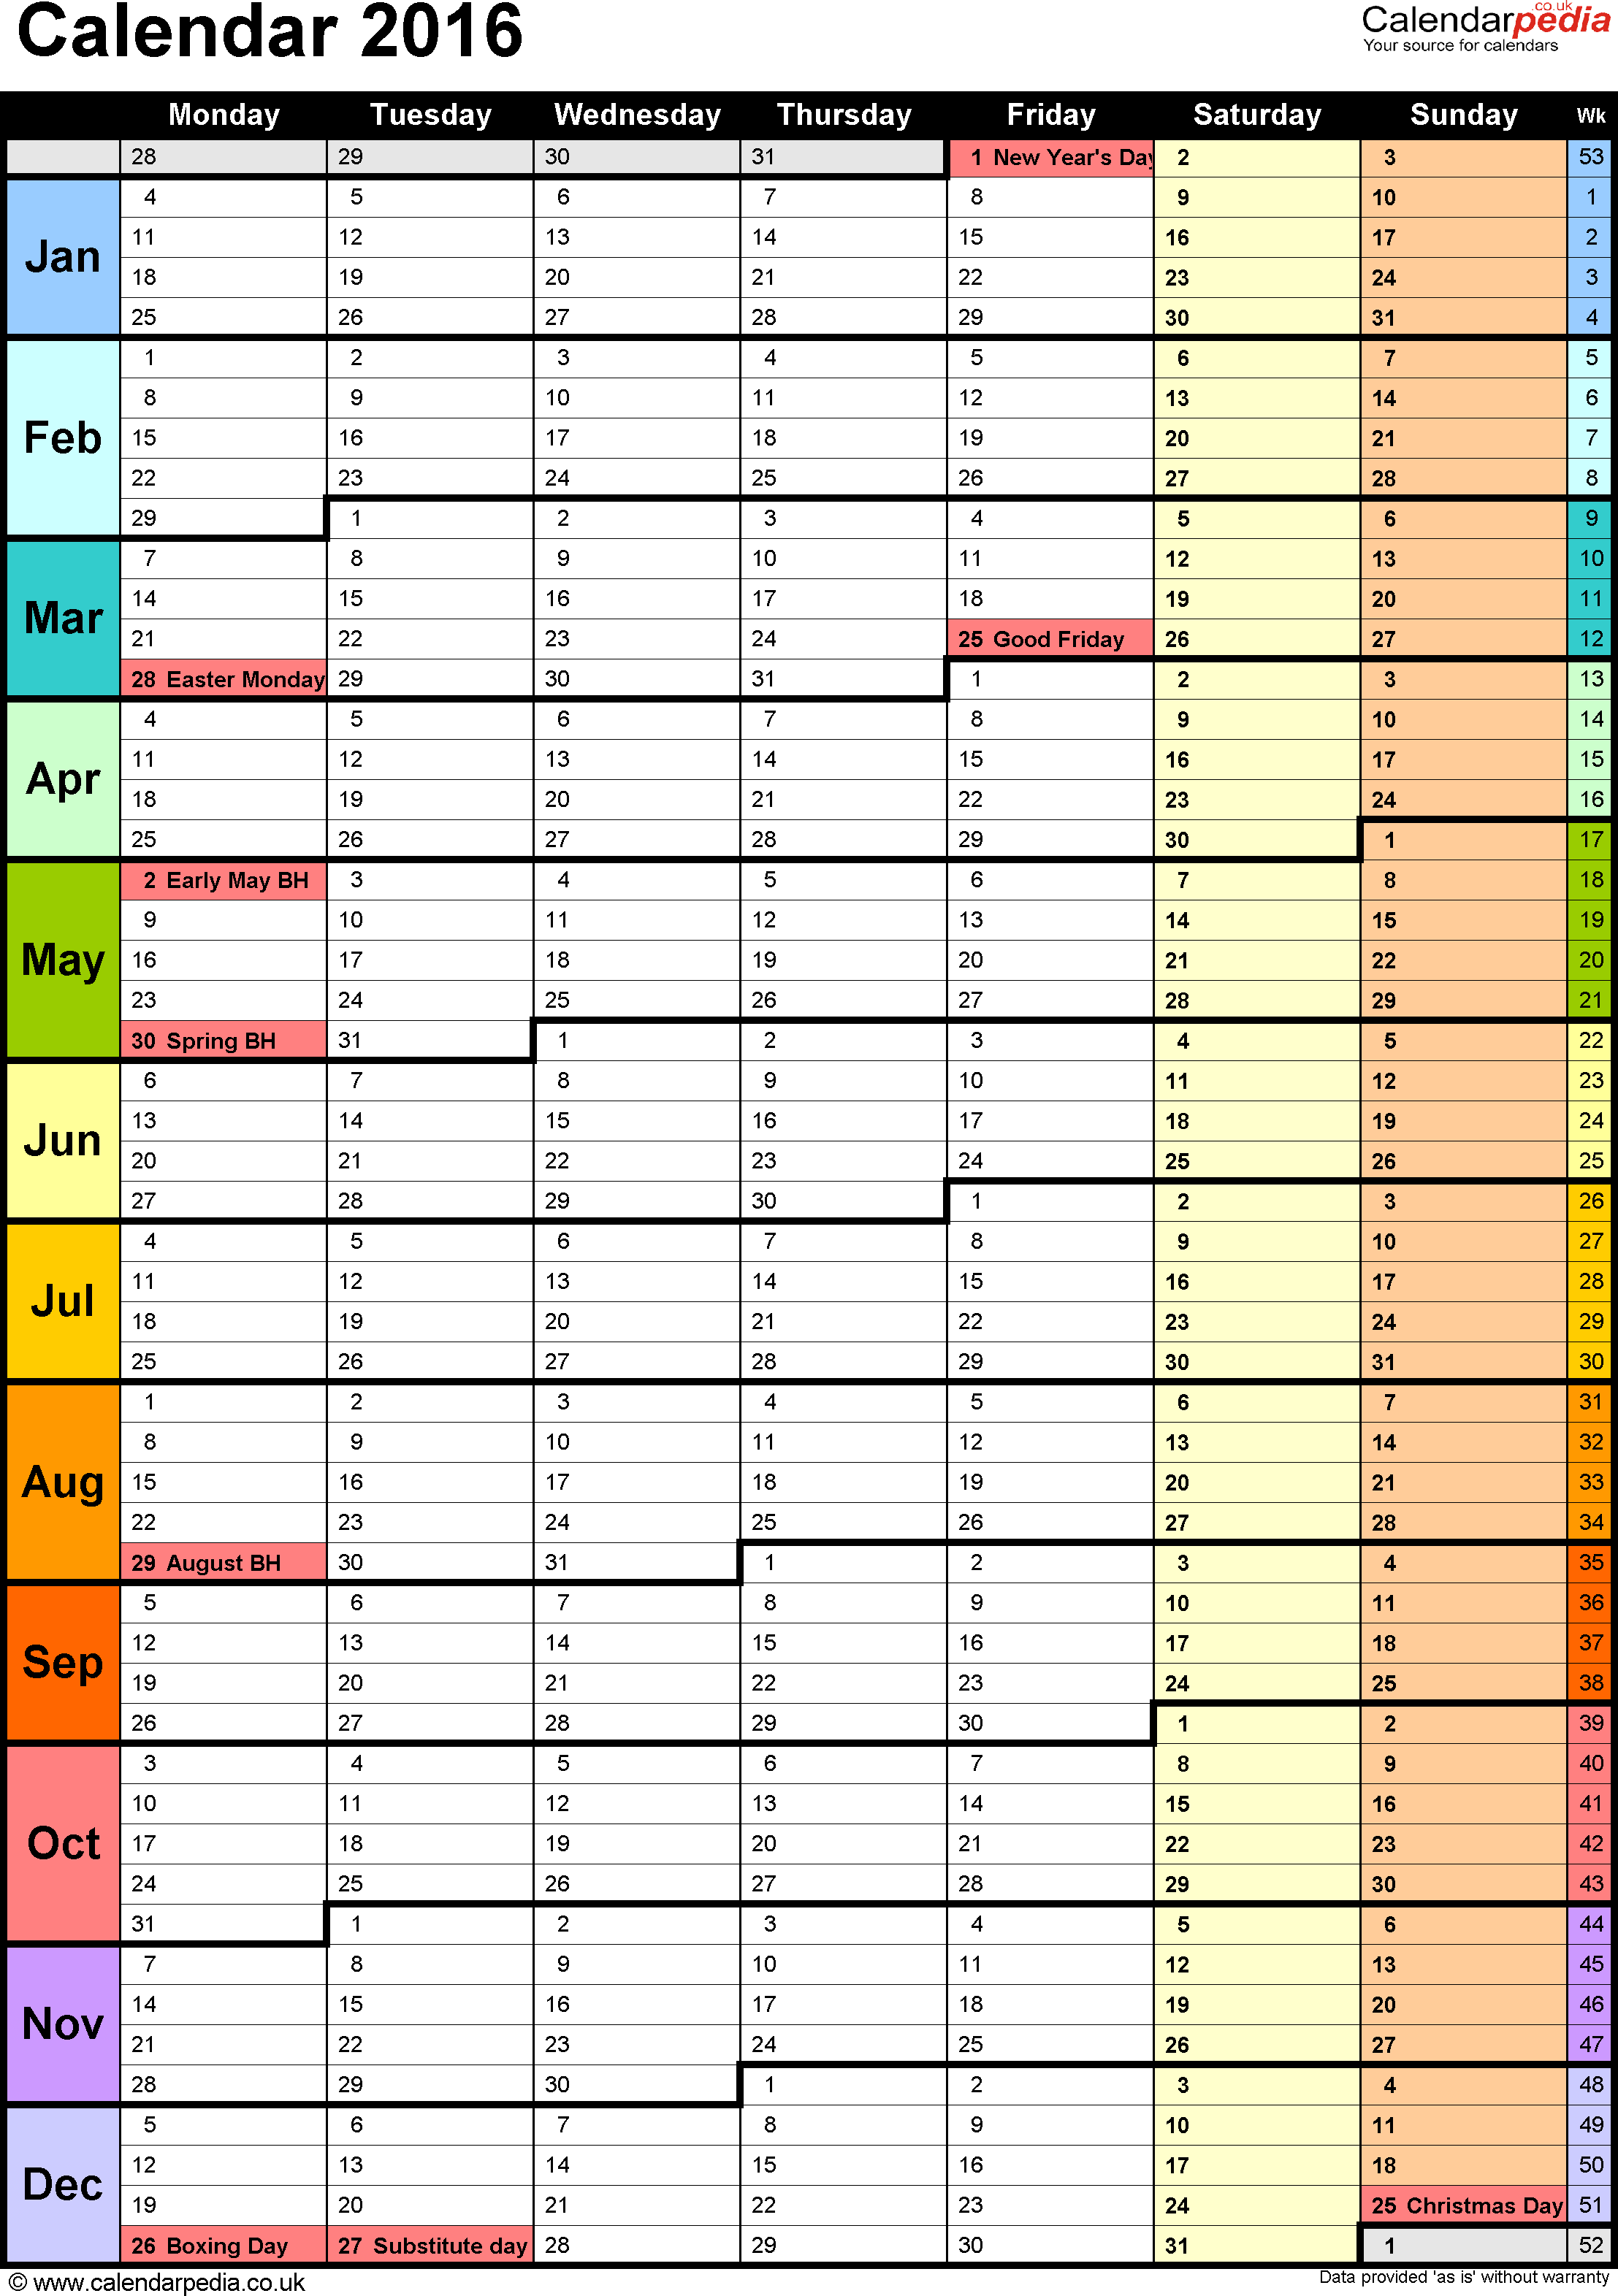 Template 15: Yearly calendar 2016 as PDF template, portrait orientation, 1 page, with UK bank holidays and week numbers, days in continuous flow/rolling layout